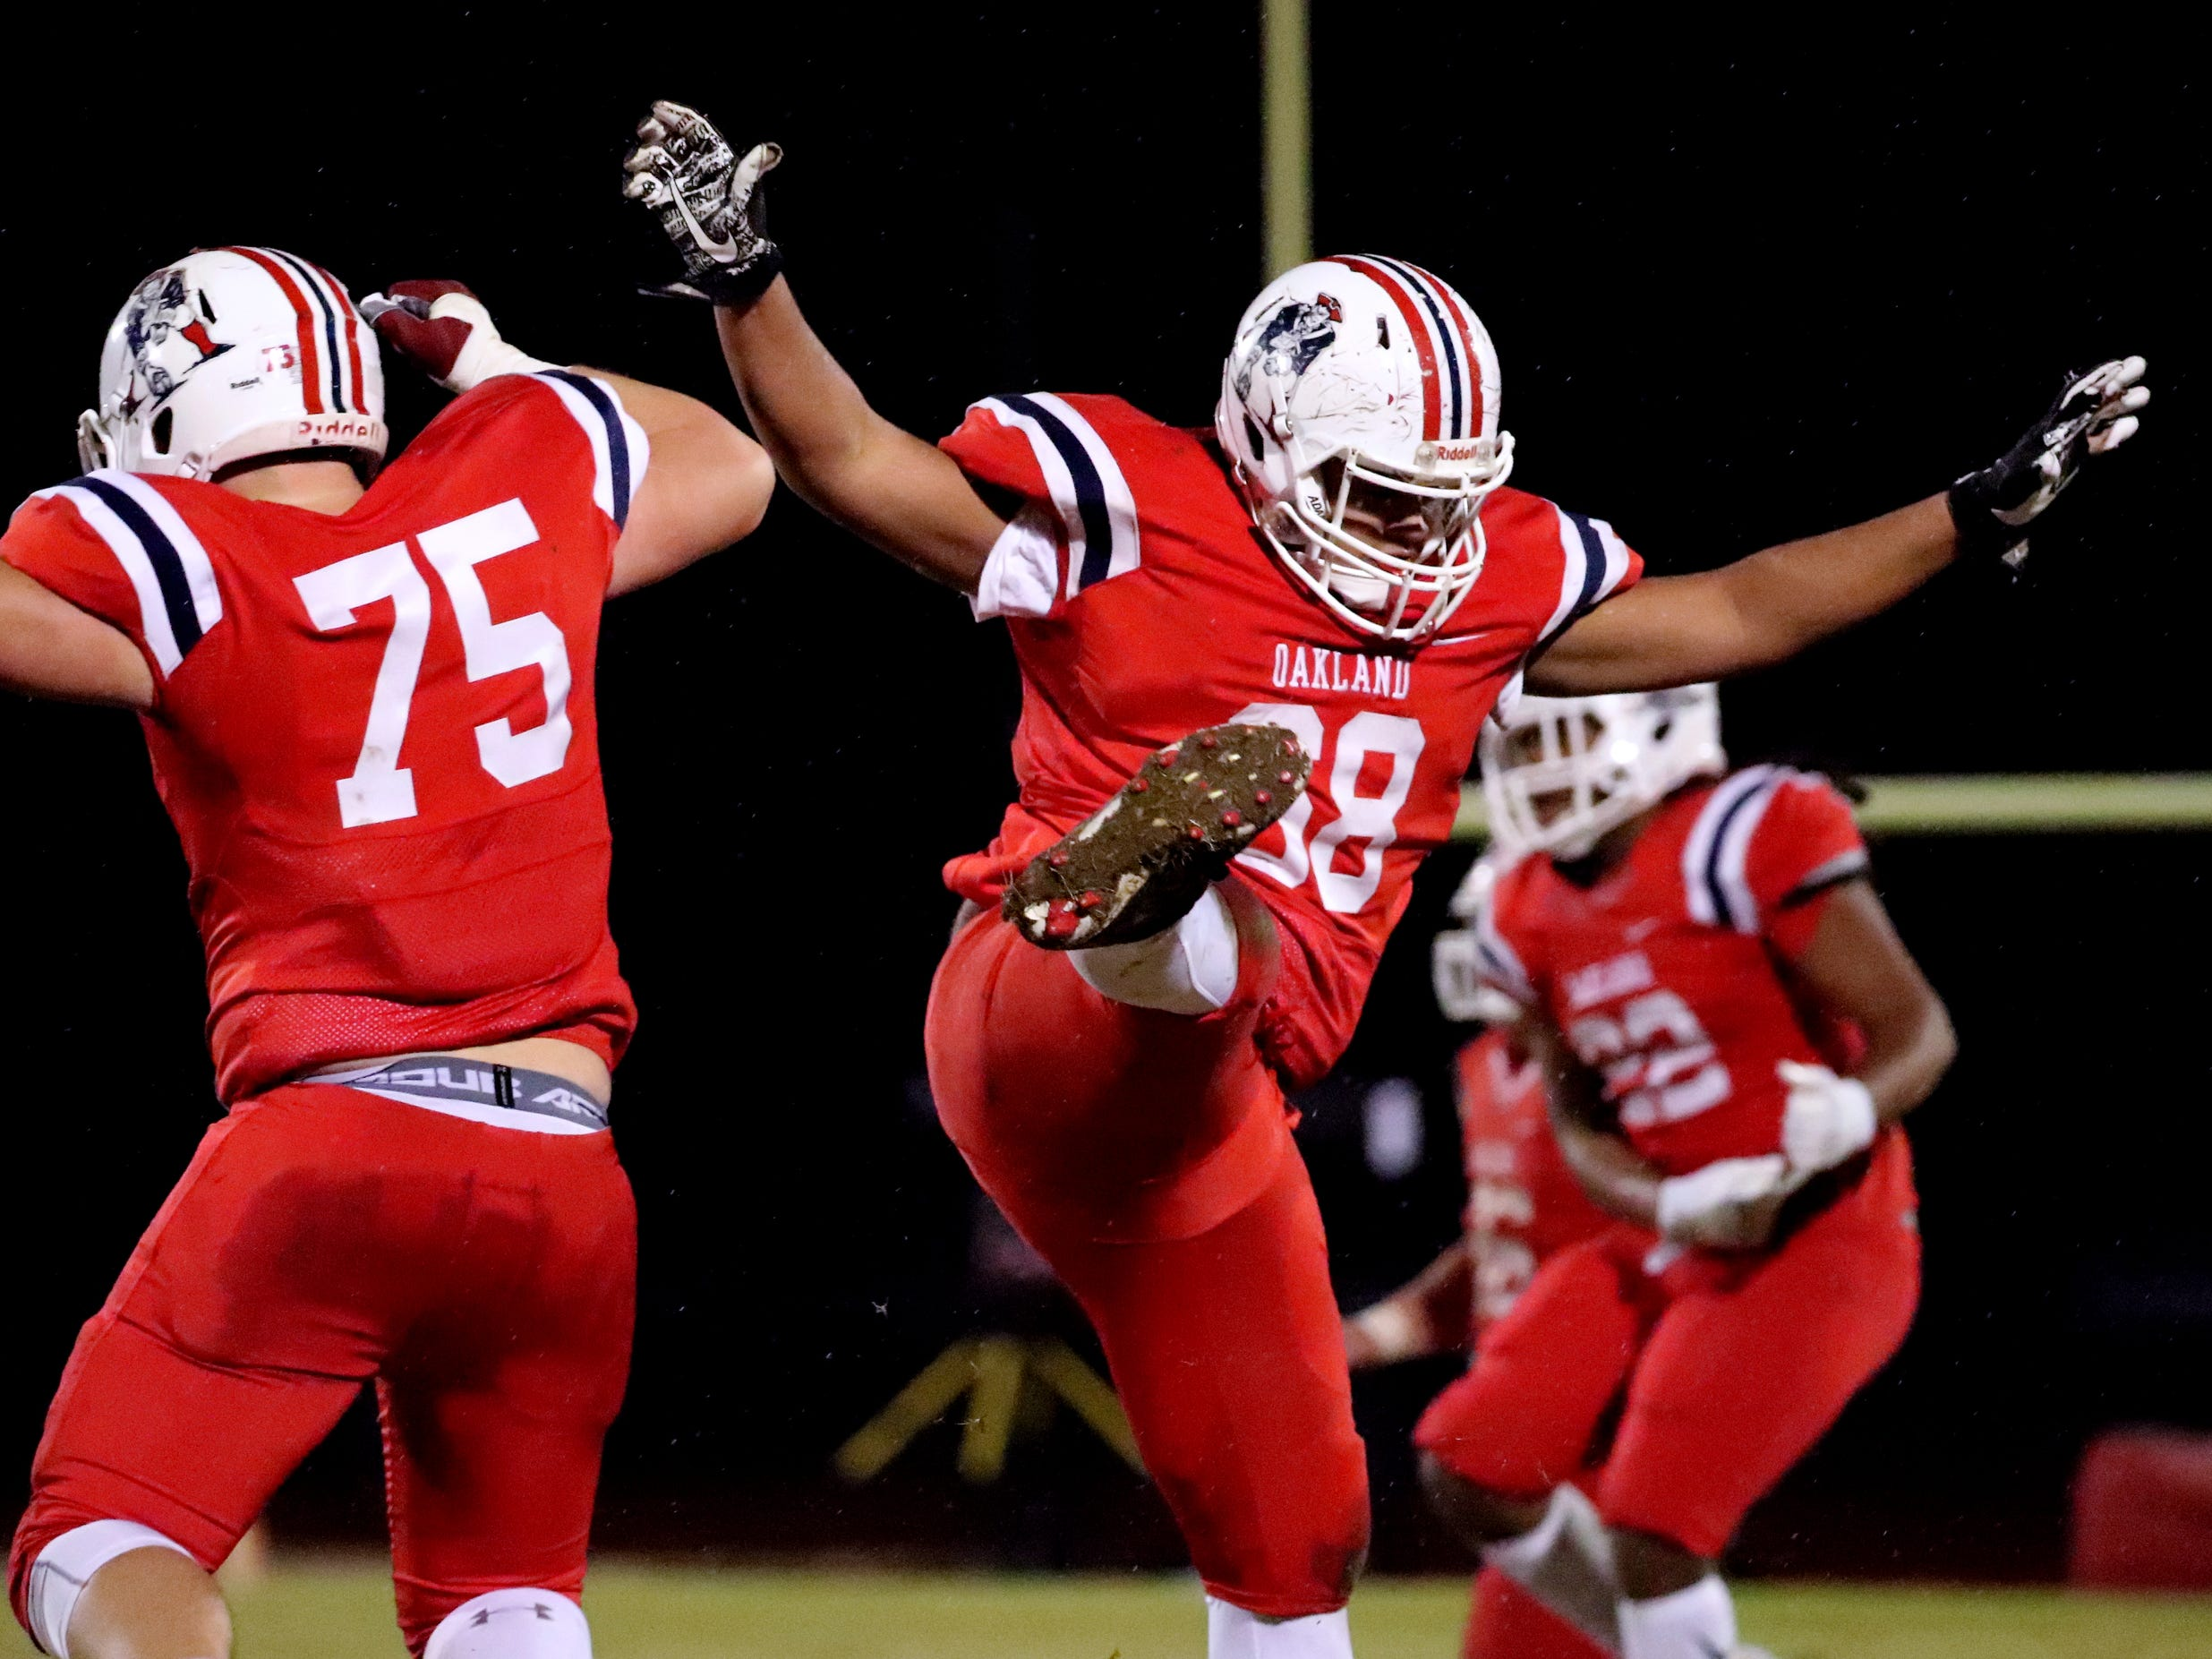 Oakland's Kain Williams (75) and Jalyn Willard (68) celebrate a fumble recovery by Malik Sibert (11) during the game against Maryville at Oakland in Murfreesboro, on Friday, Nov. 23 2018, during the 6A playoffs.